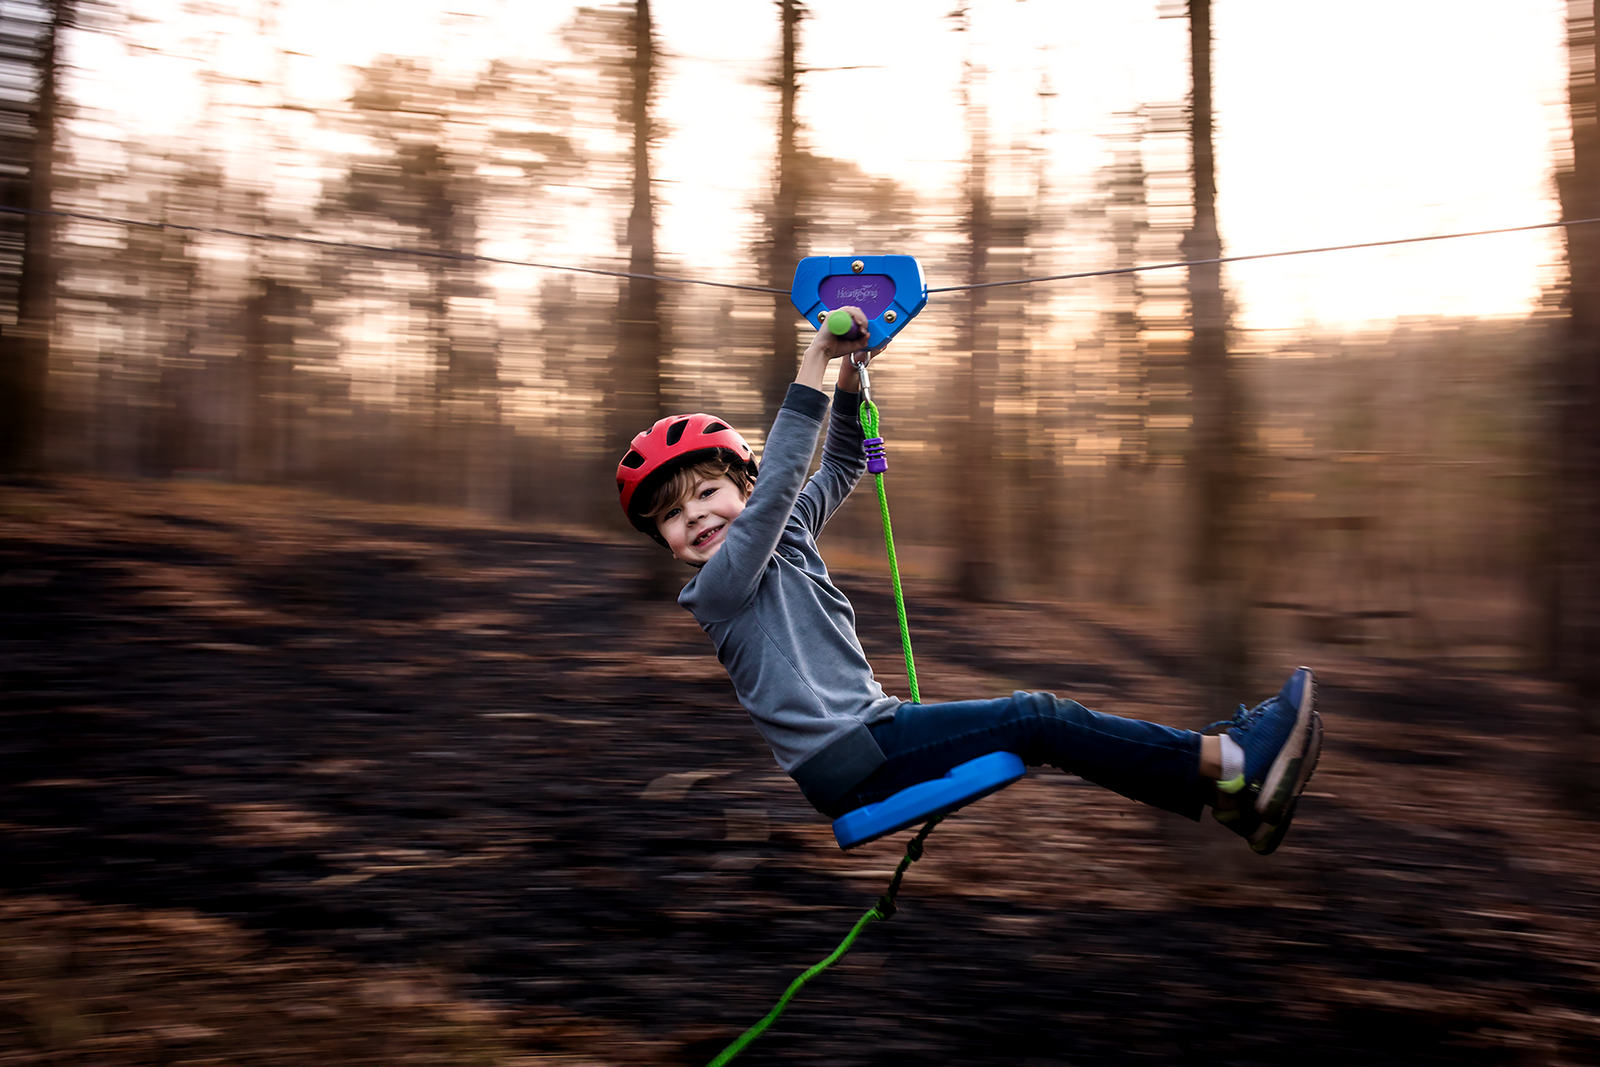 family photographer, columbus, ga, atlanta, documentary, photojournalism, boy on zipline, motion blur__8182-2